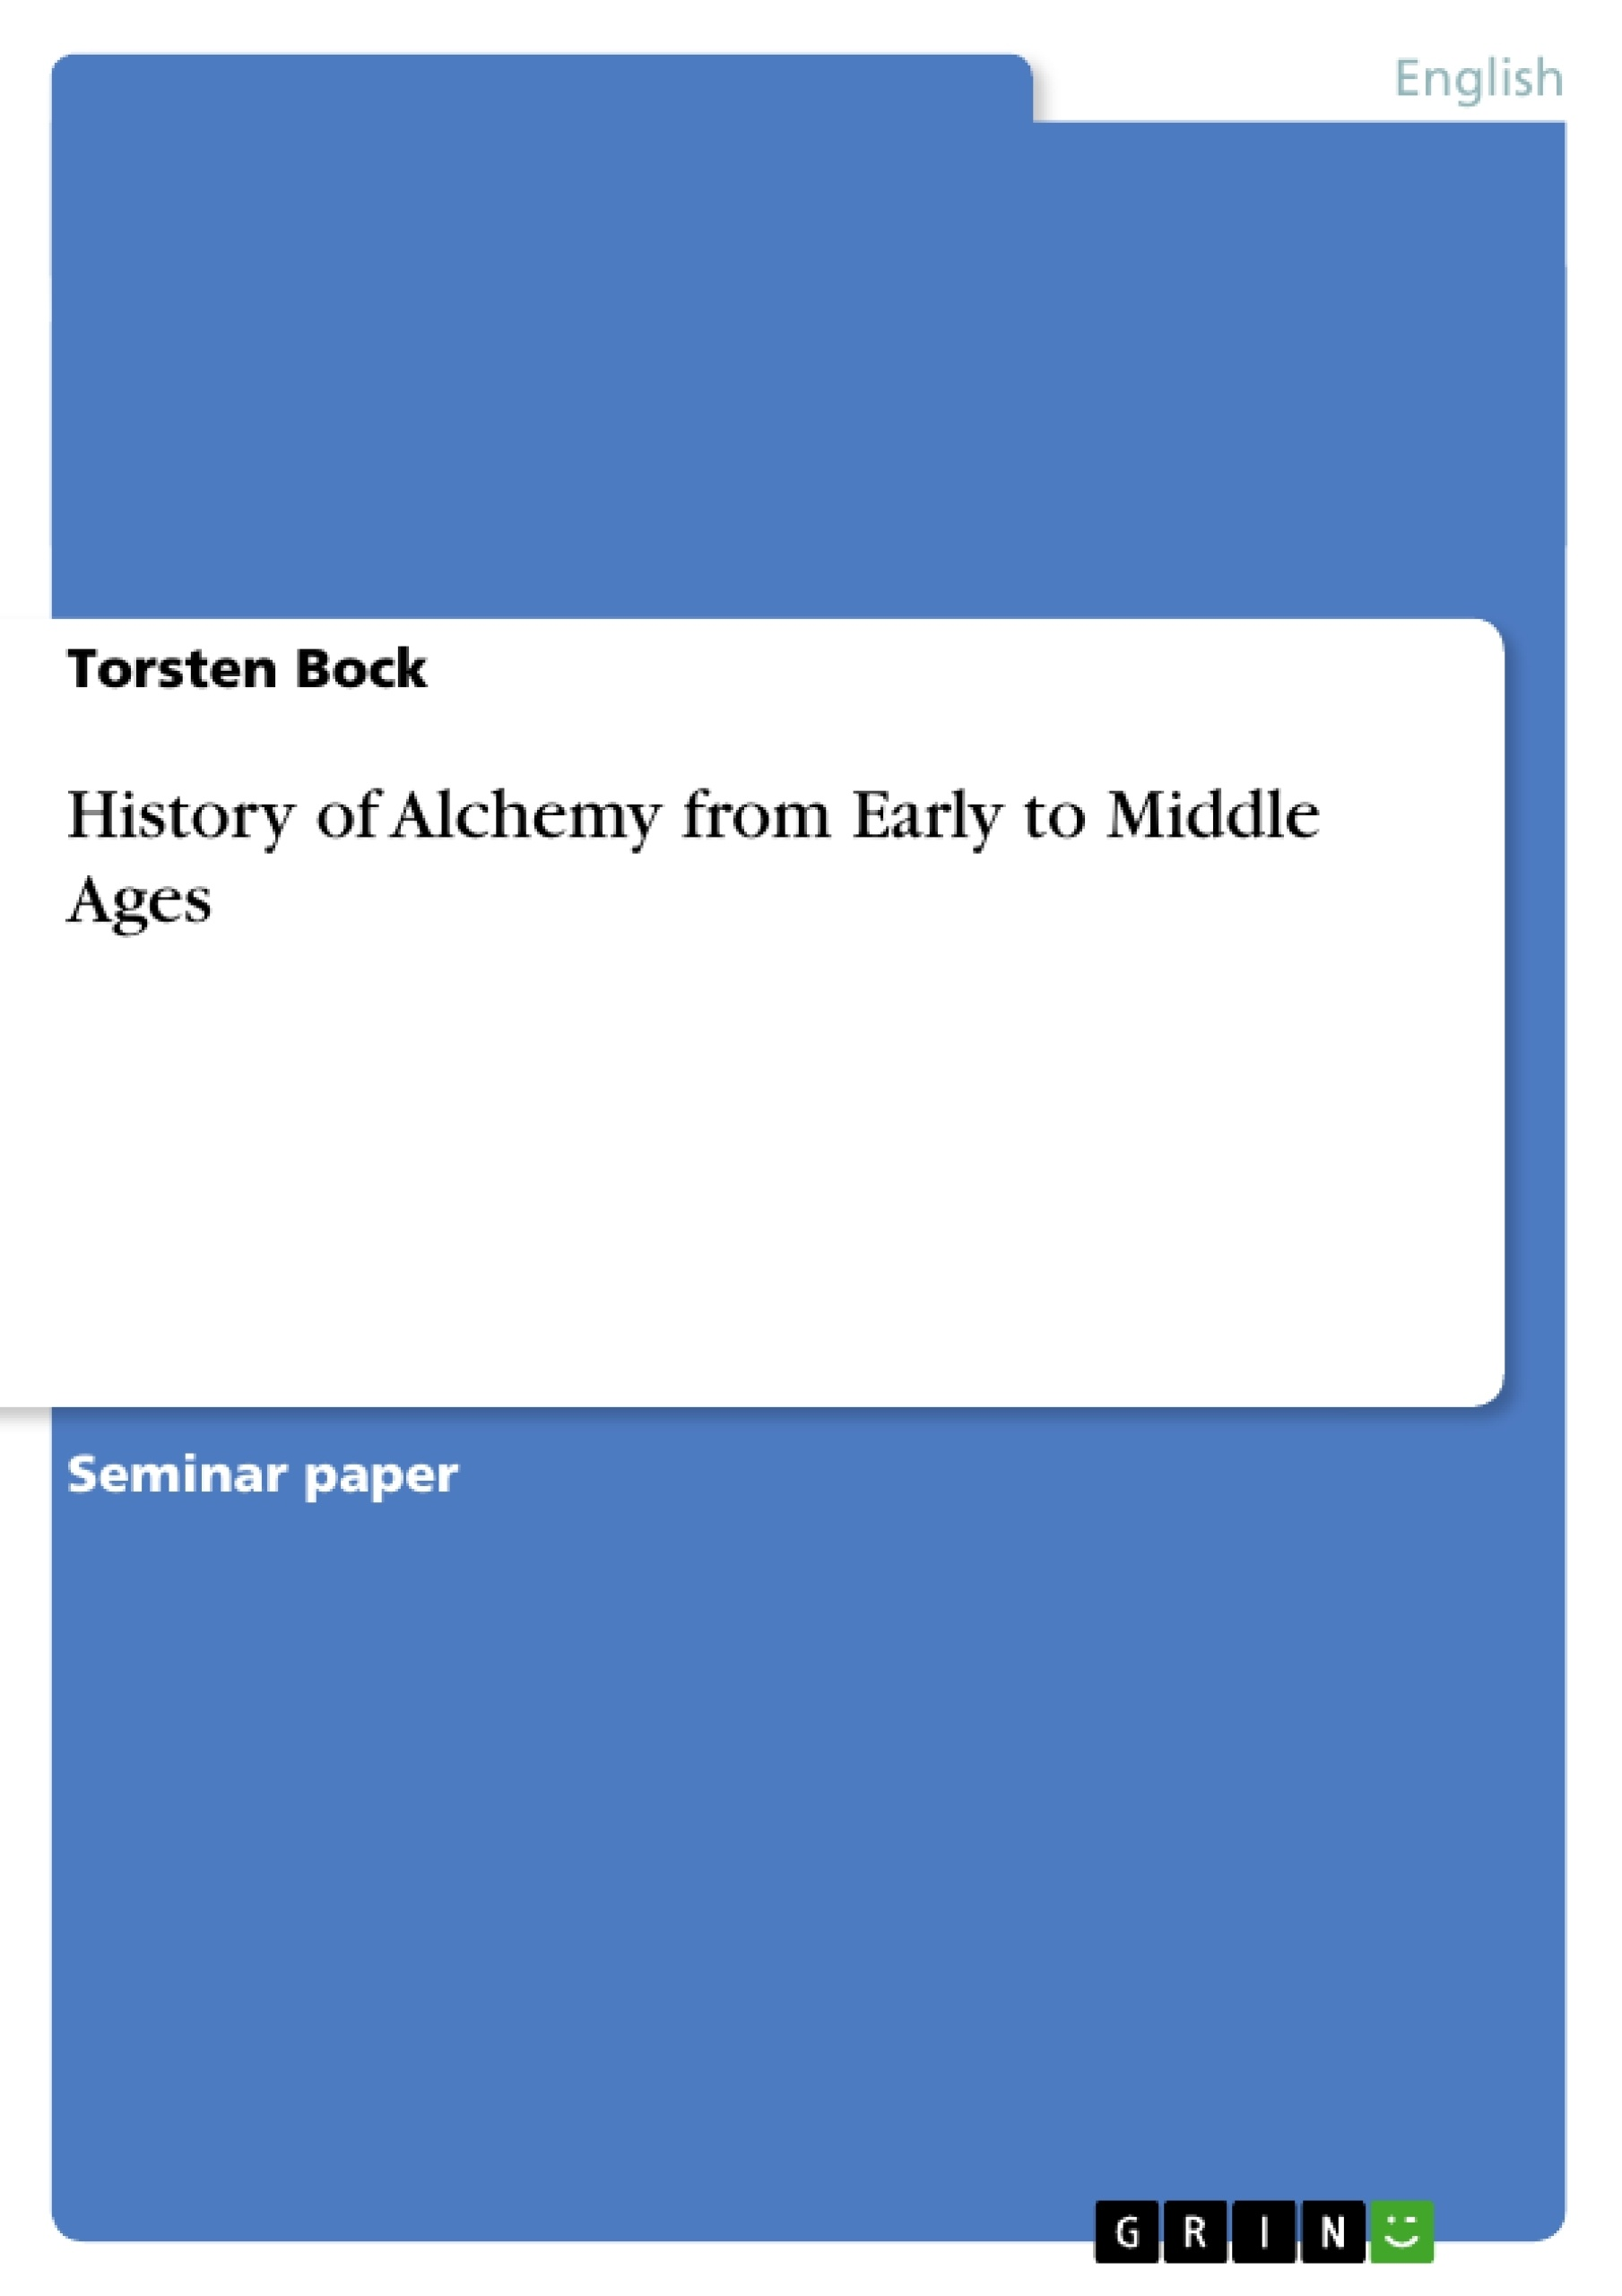 Title: History of Alchemy from Early to Middle Ages